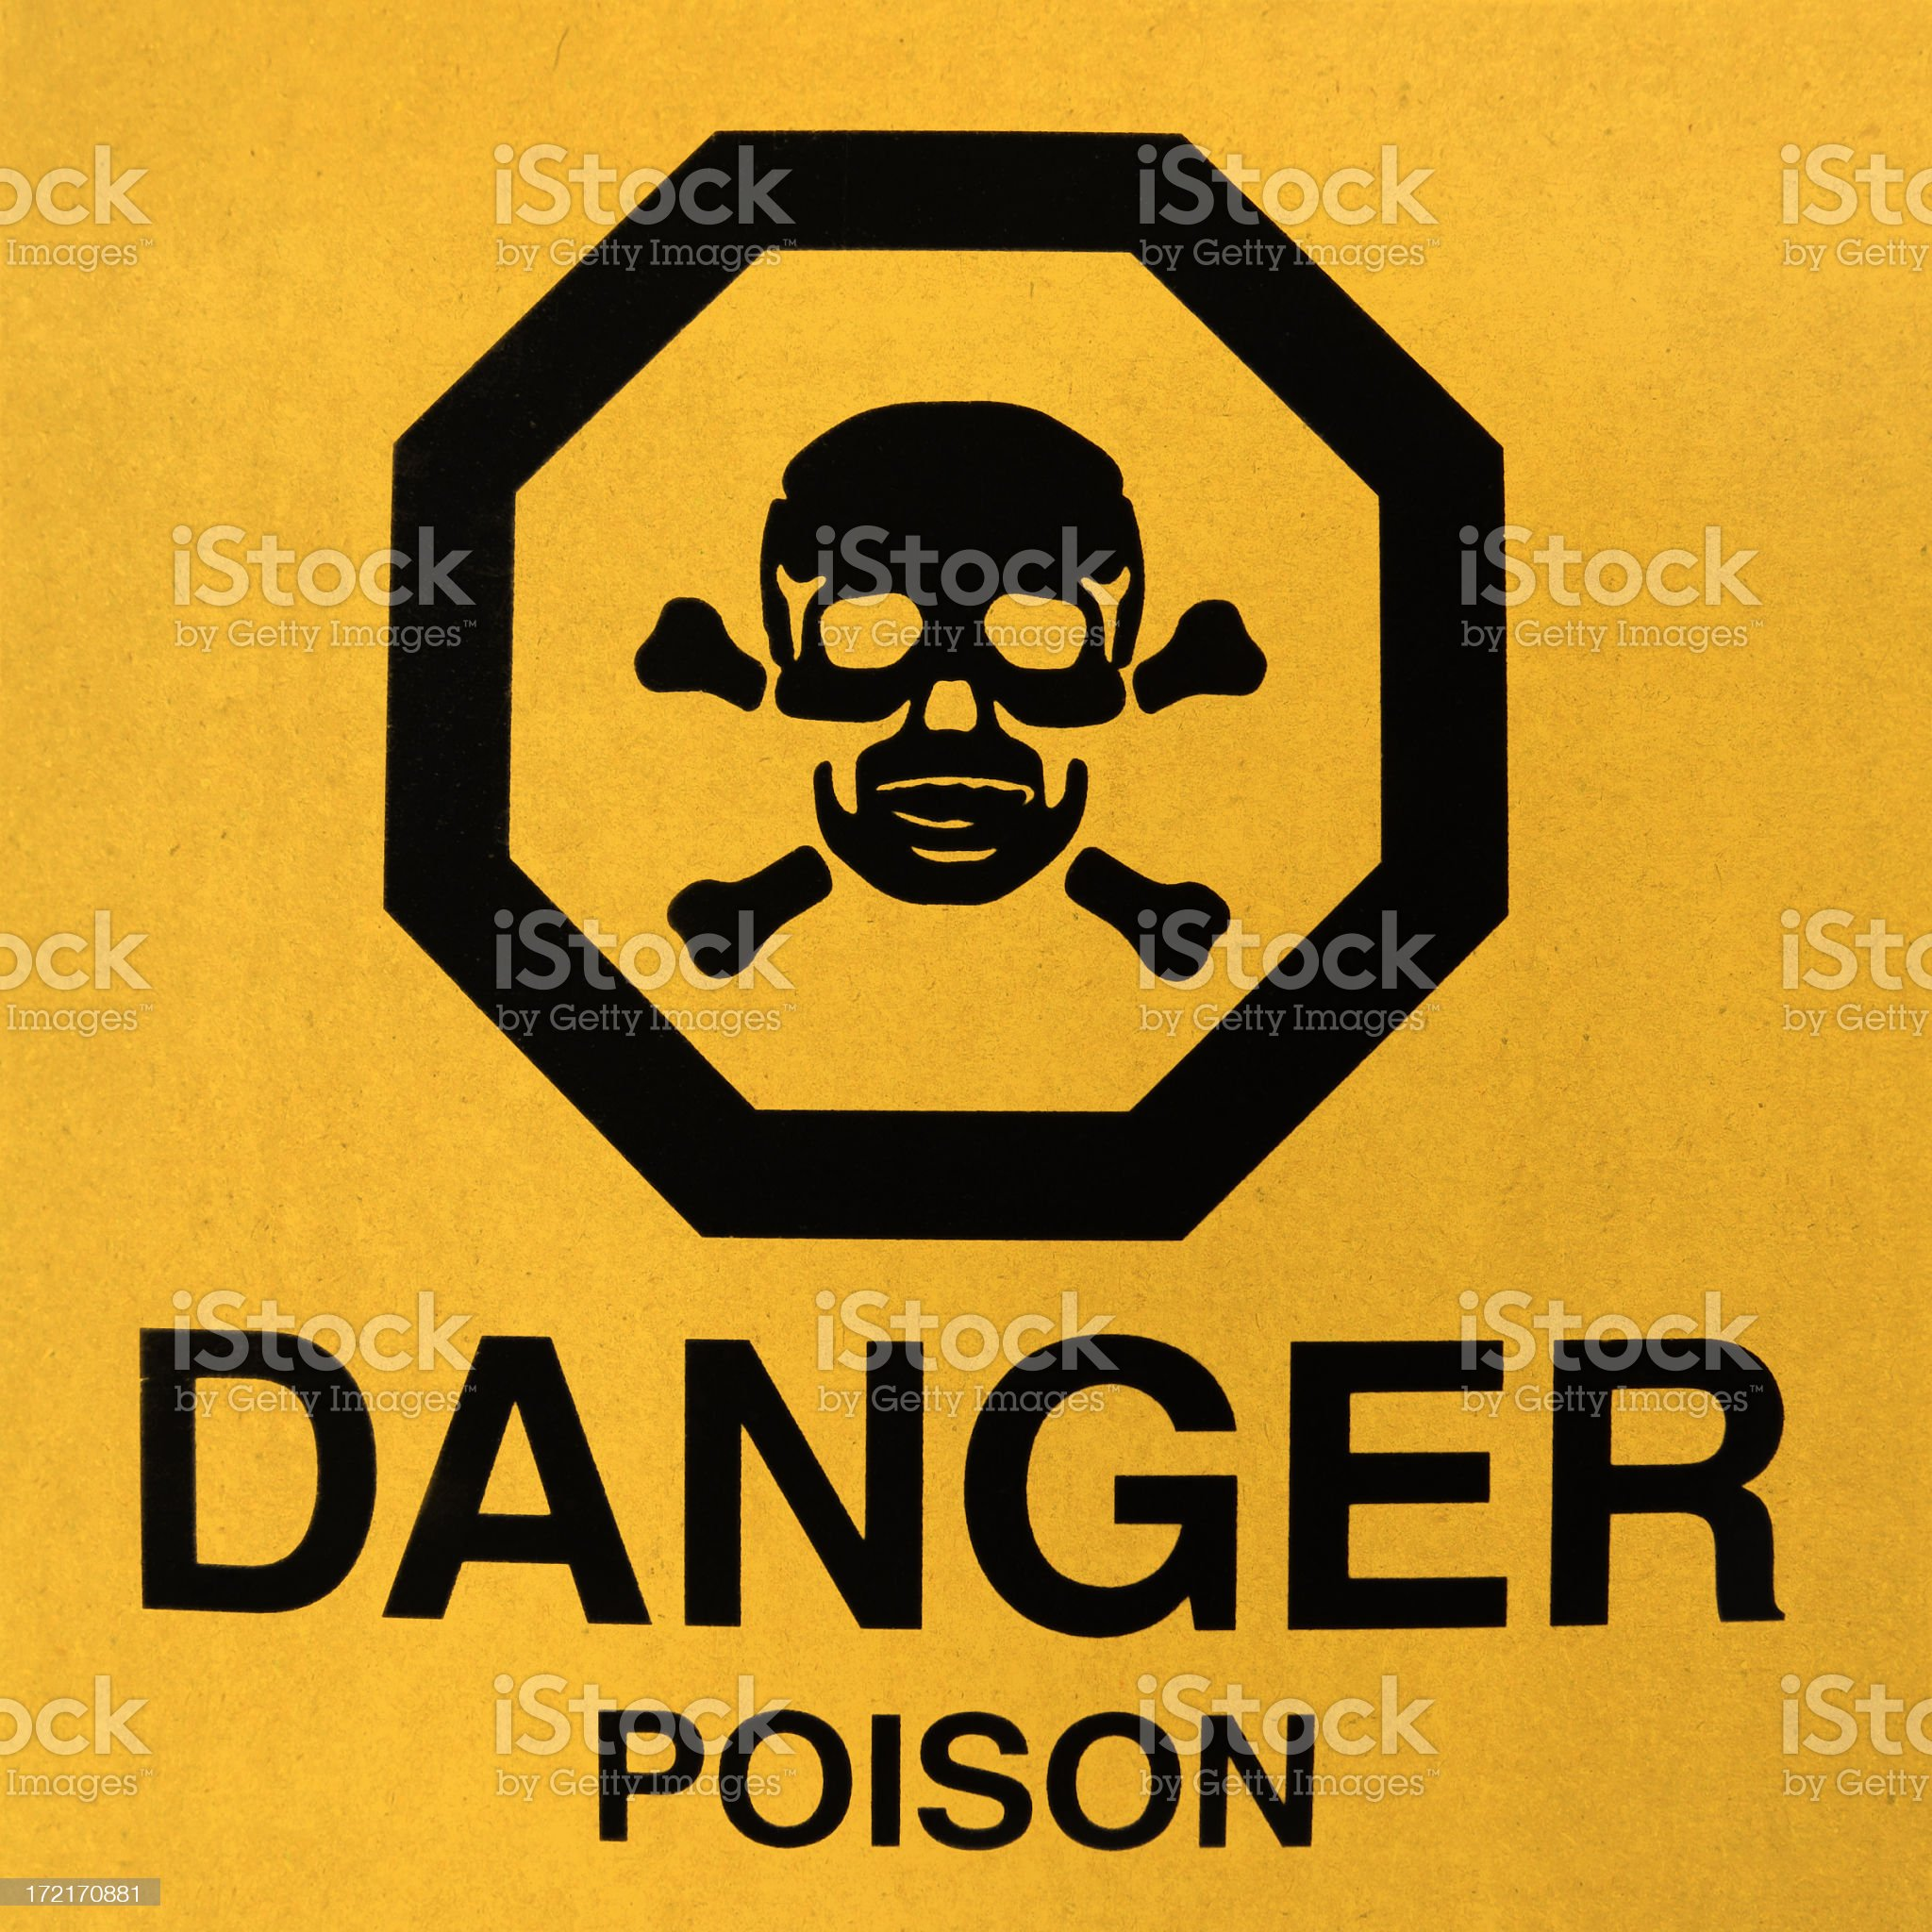 Danger ! Poison sign royalty-free stock photo